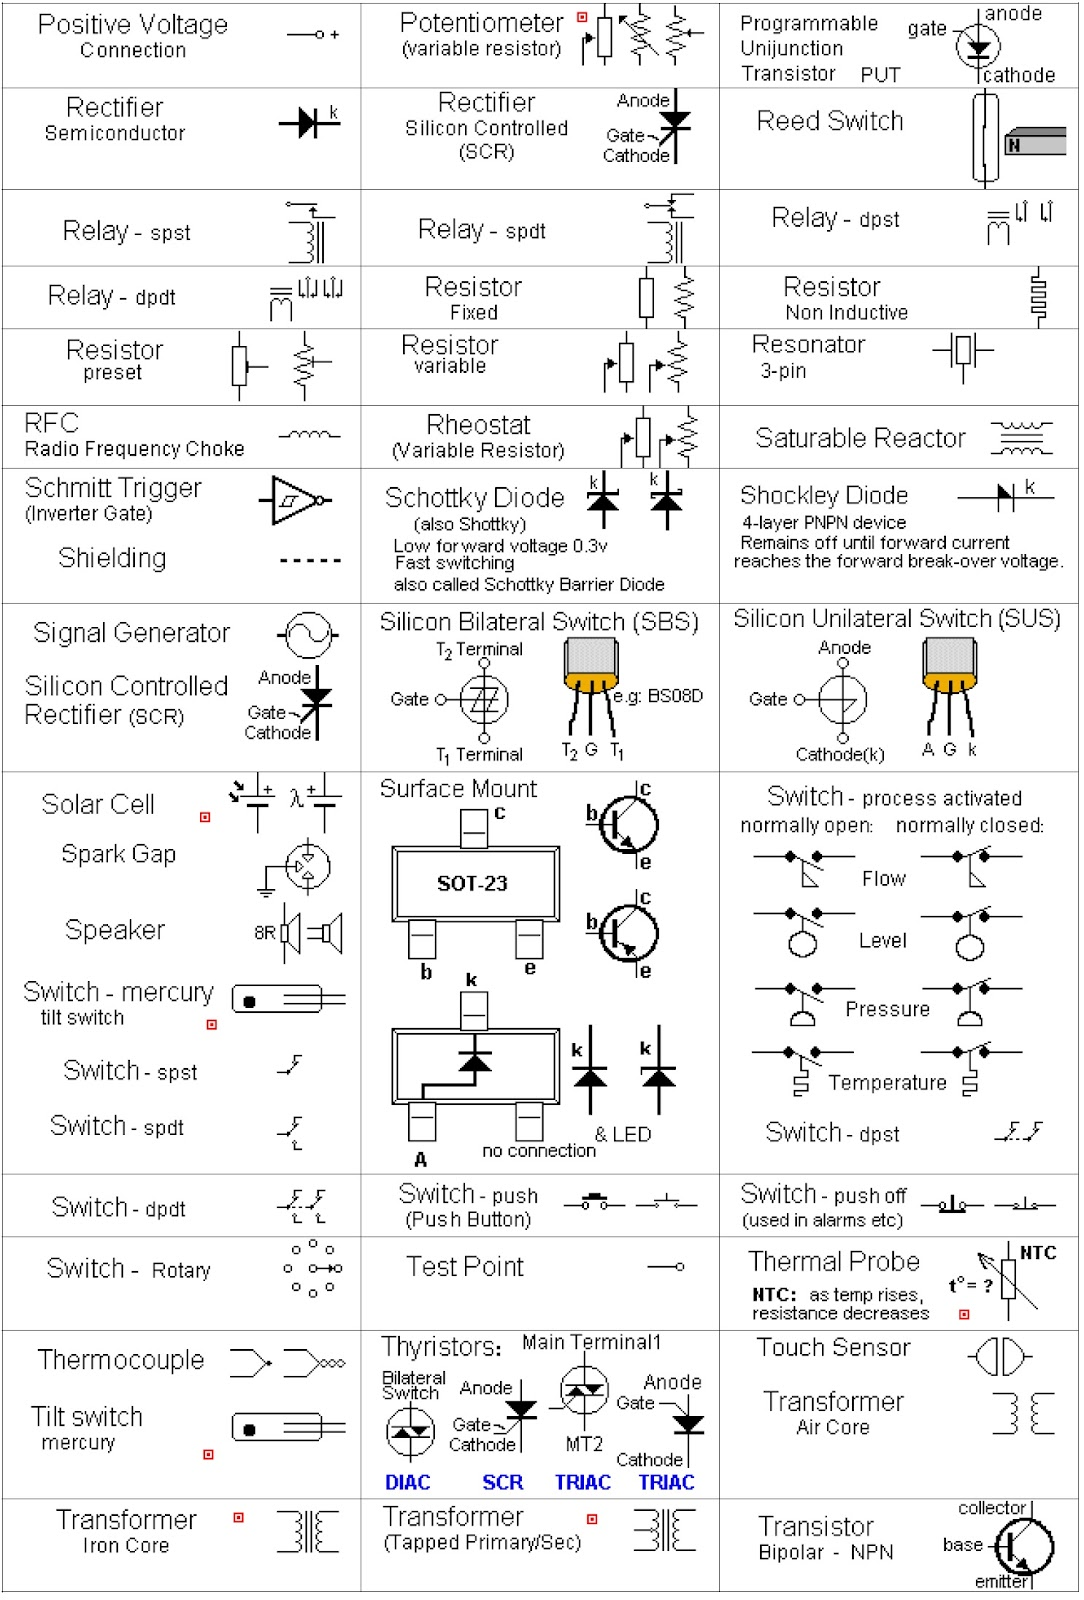 Electronic circuit, componnent data, lesson and etc….: circuit symbols